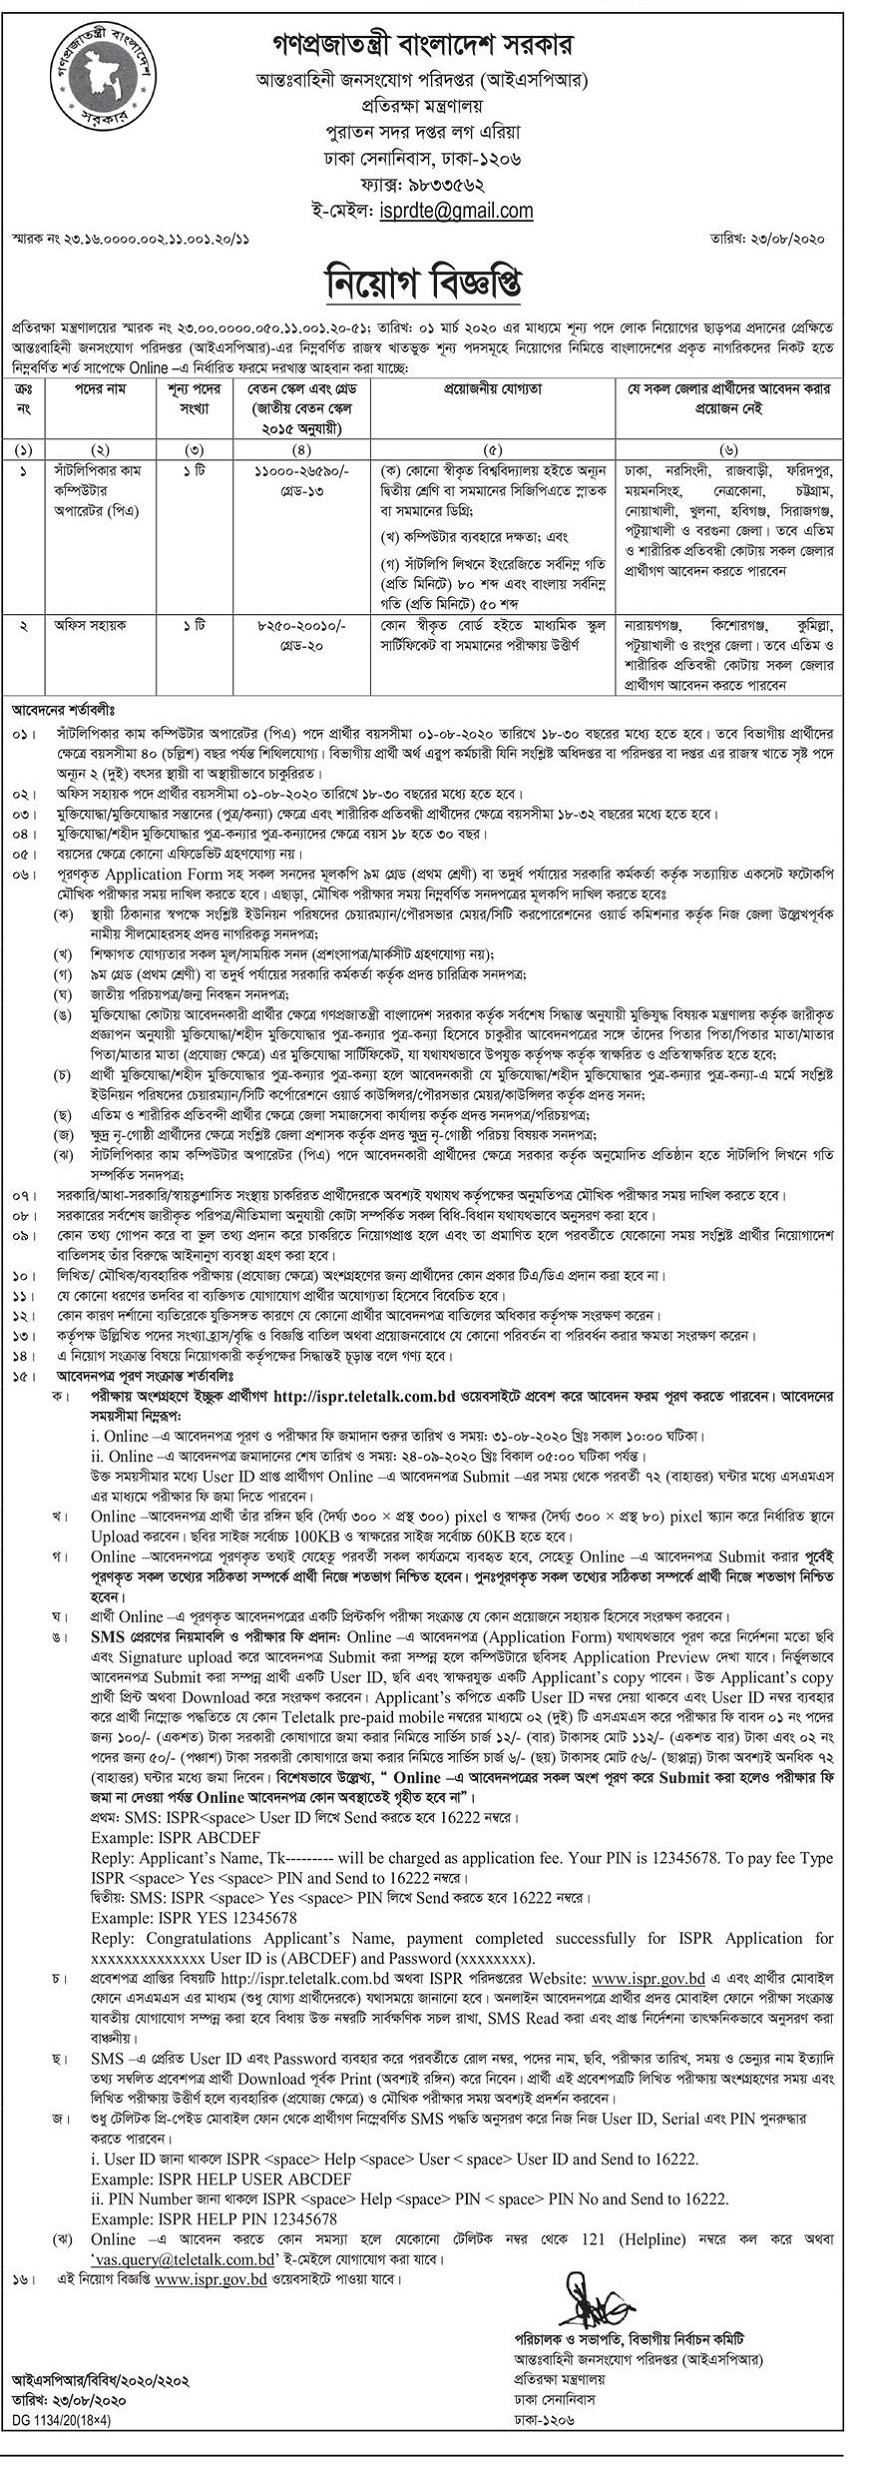 Ministry of Defense MOD Job Circular